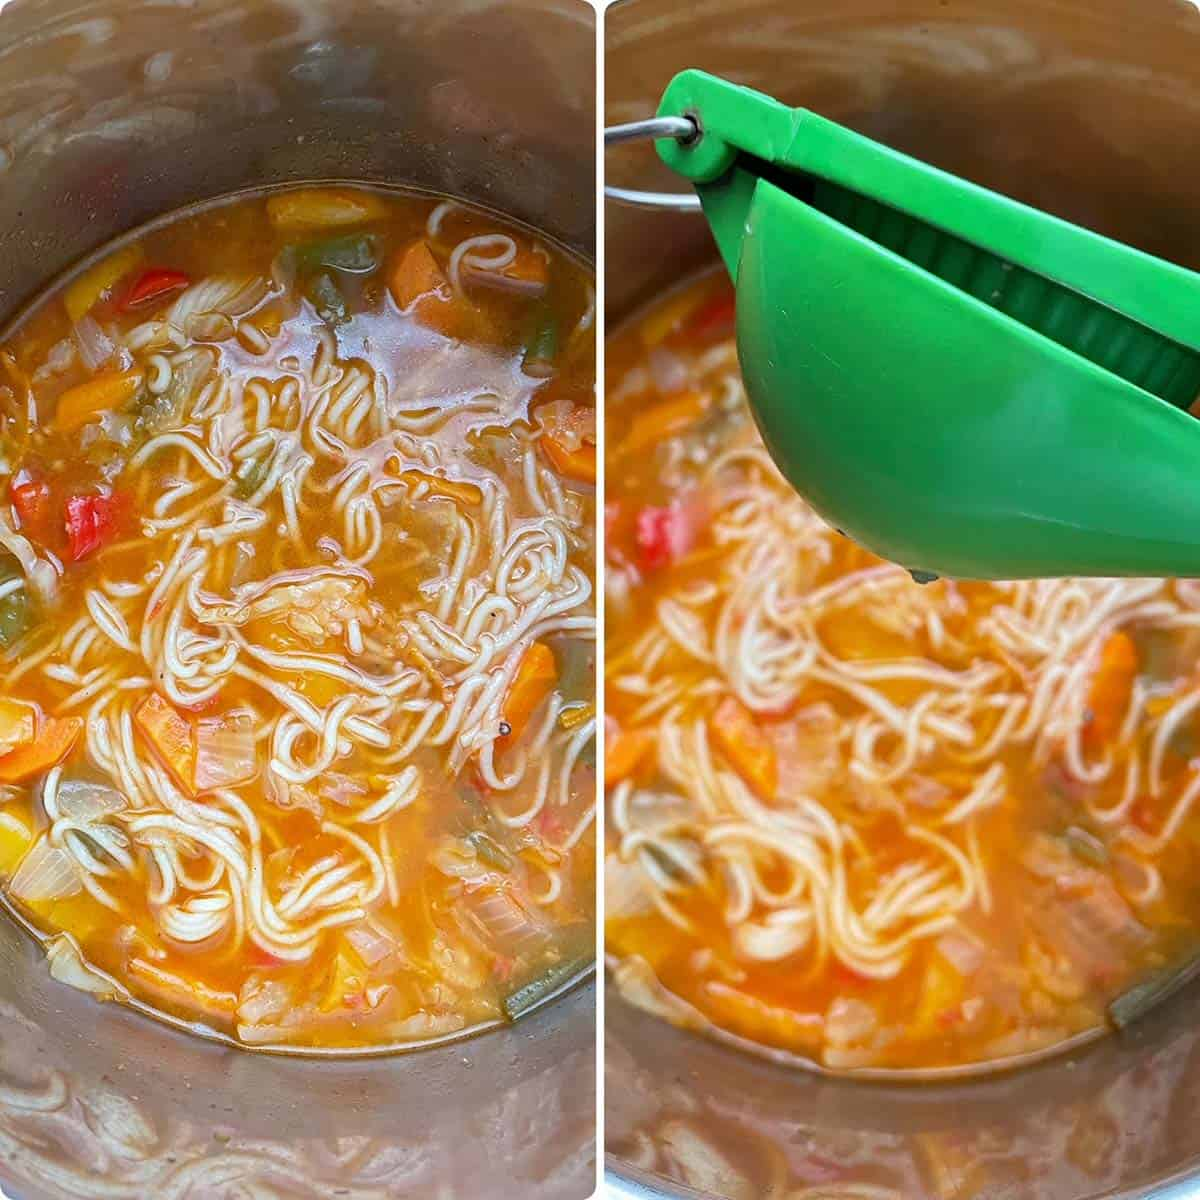 Cooked noodle soup drizzled with lemon juice